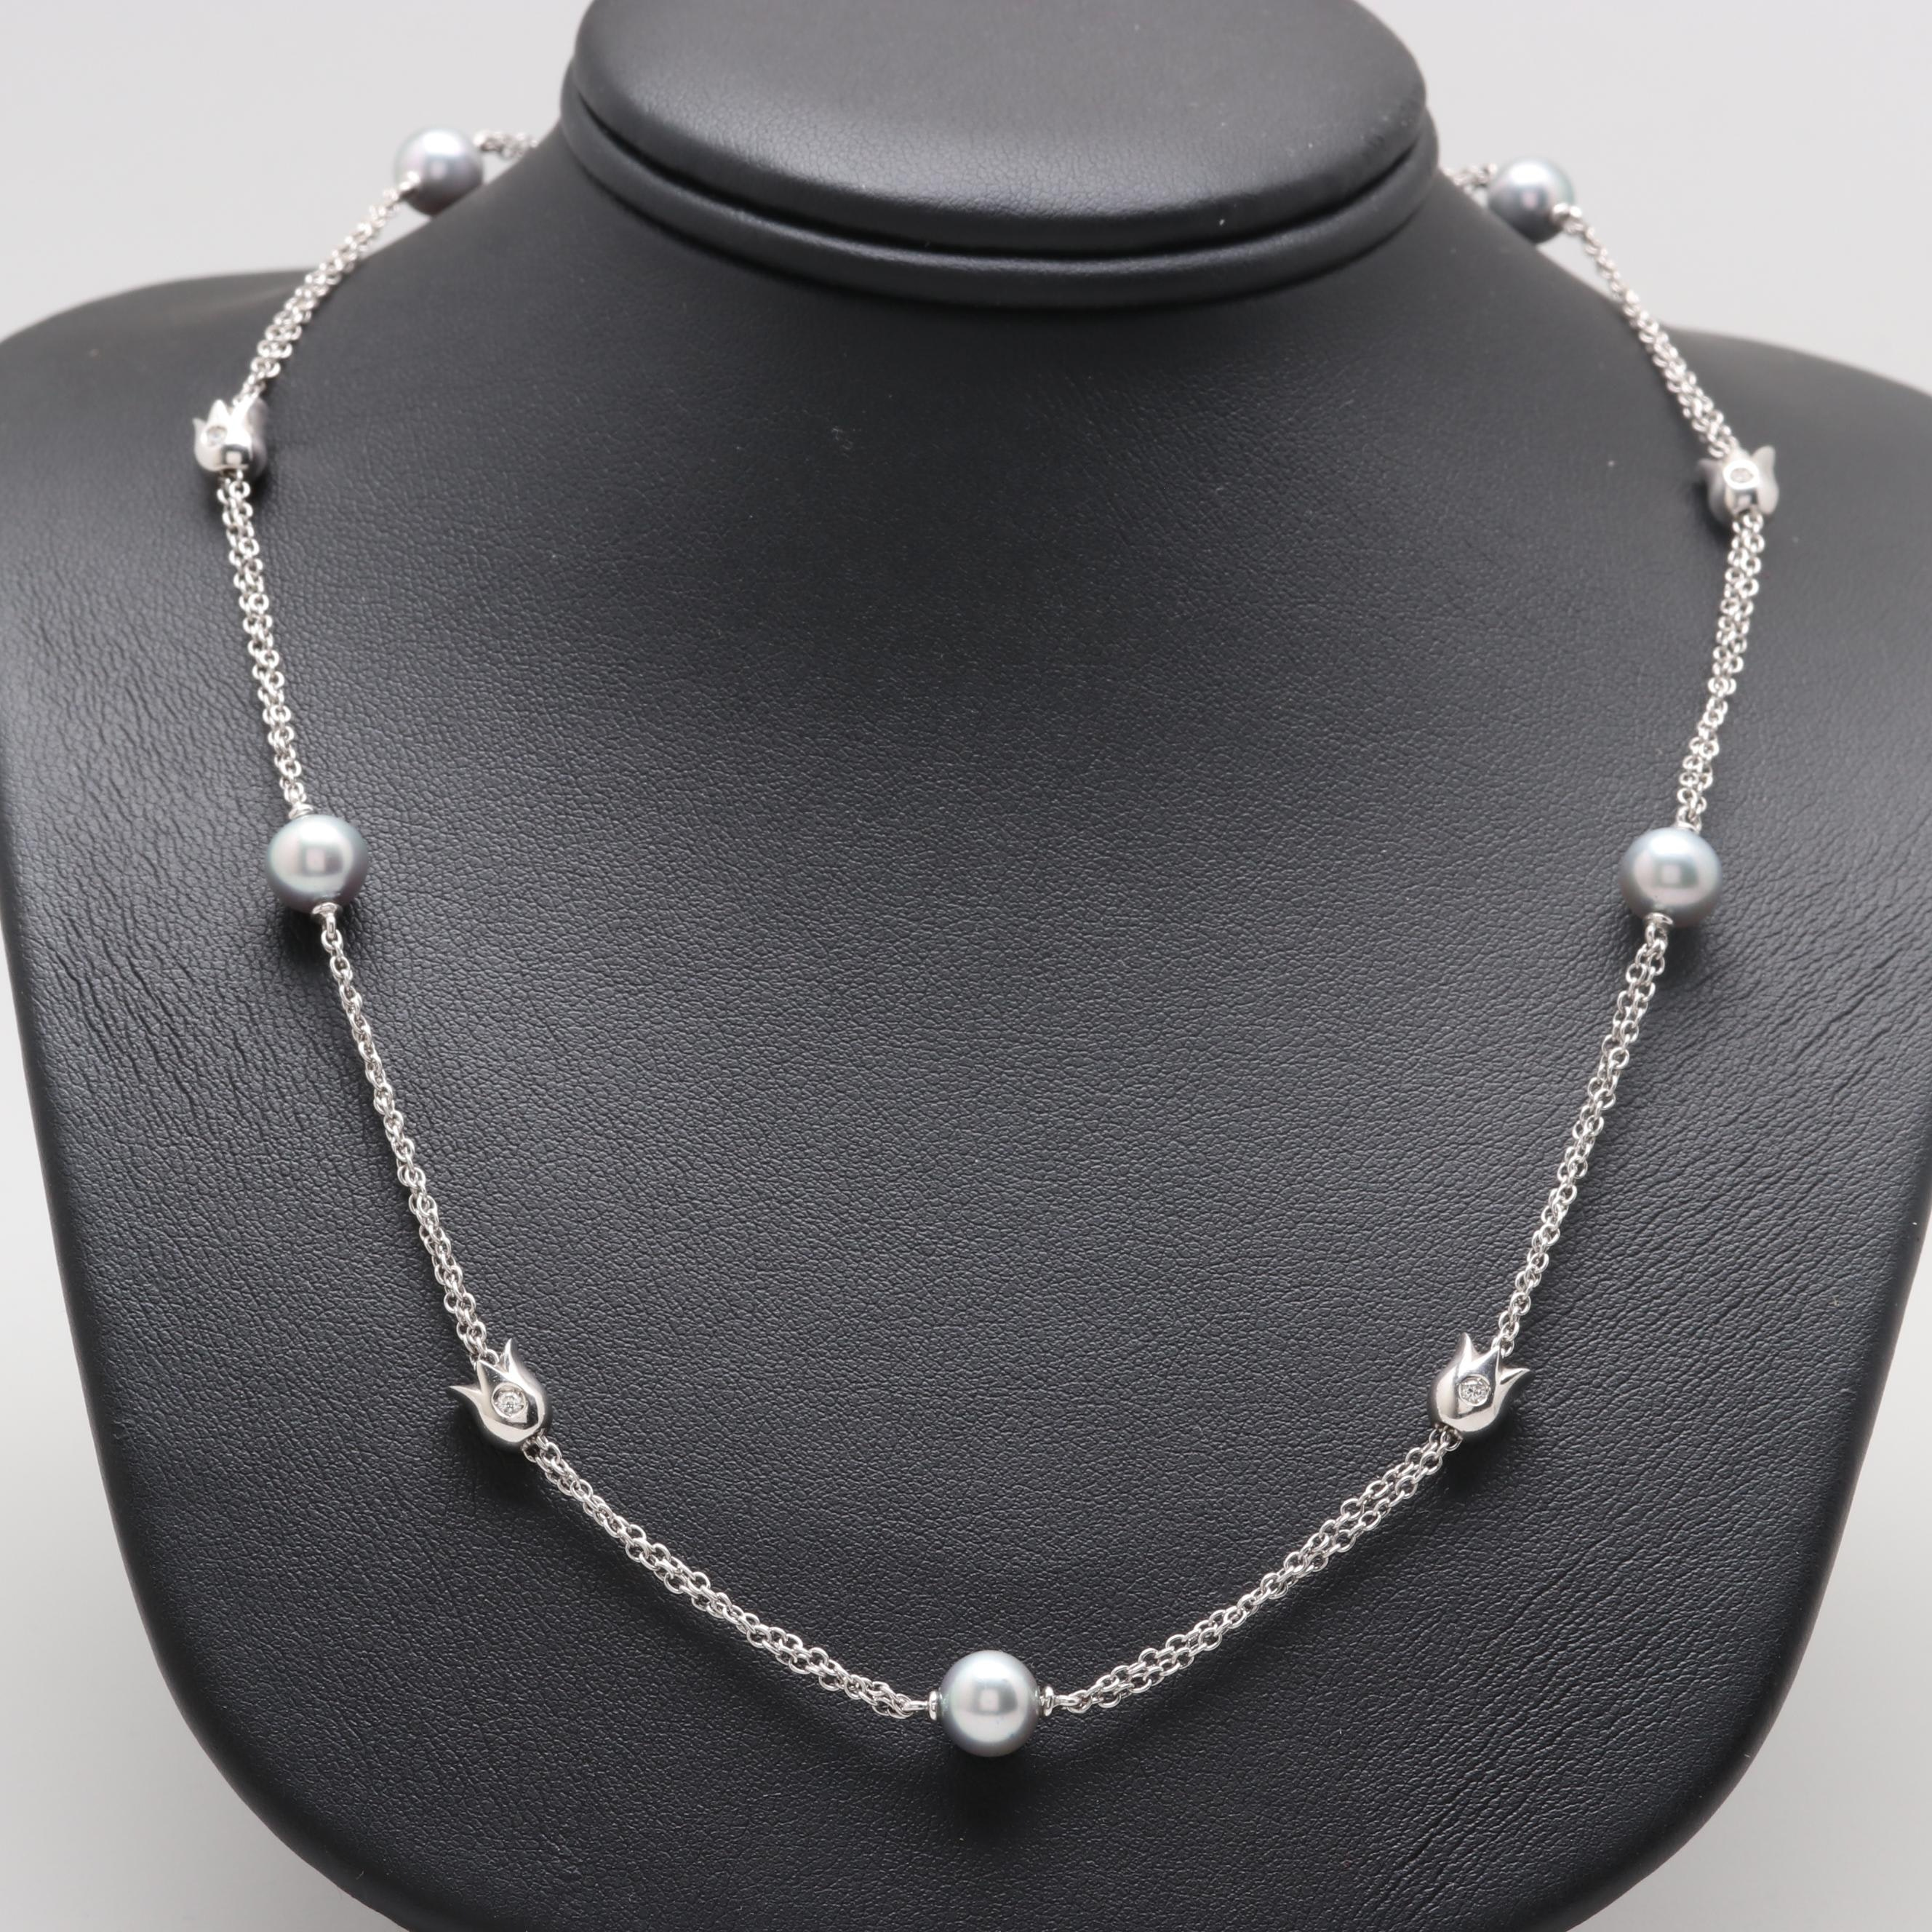 Mikawa by Damiani 18K White Gold Cultured Pearl and Diamond Station Necklace